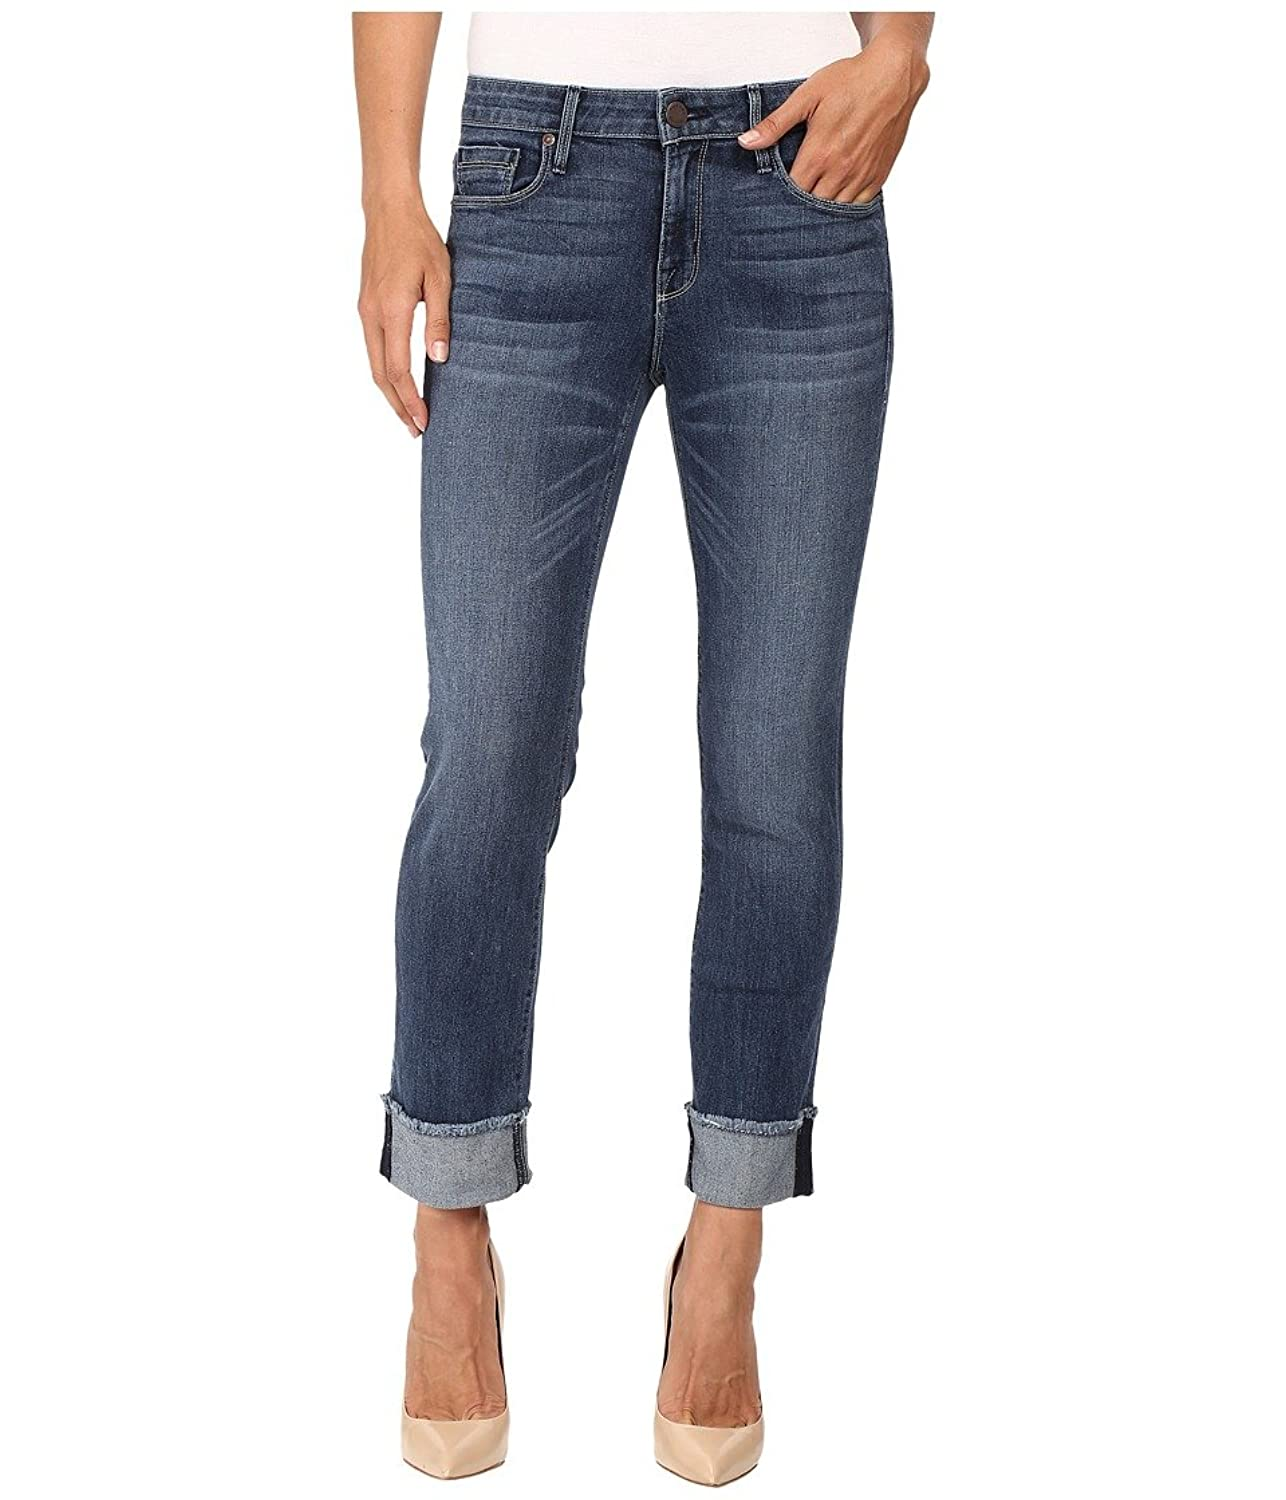 Parker Smith Women's Cuffed Straight in Petrol Blue Petrol Blue Jeans